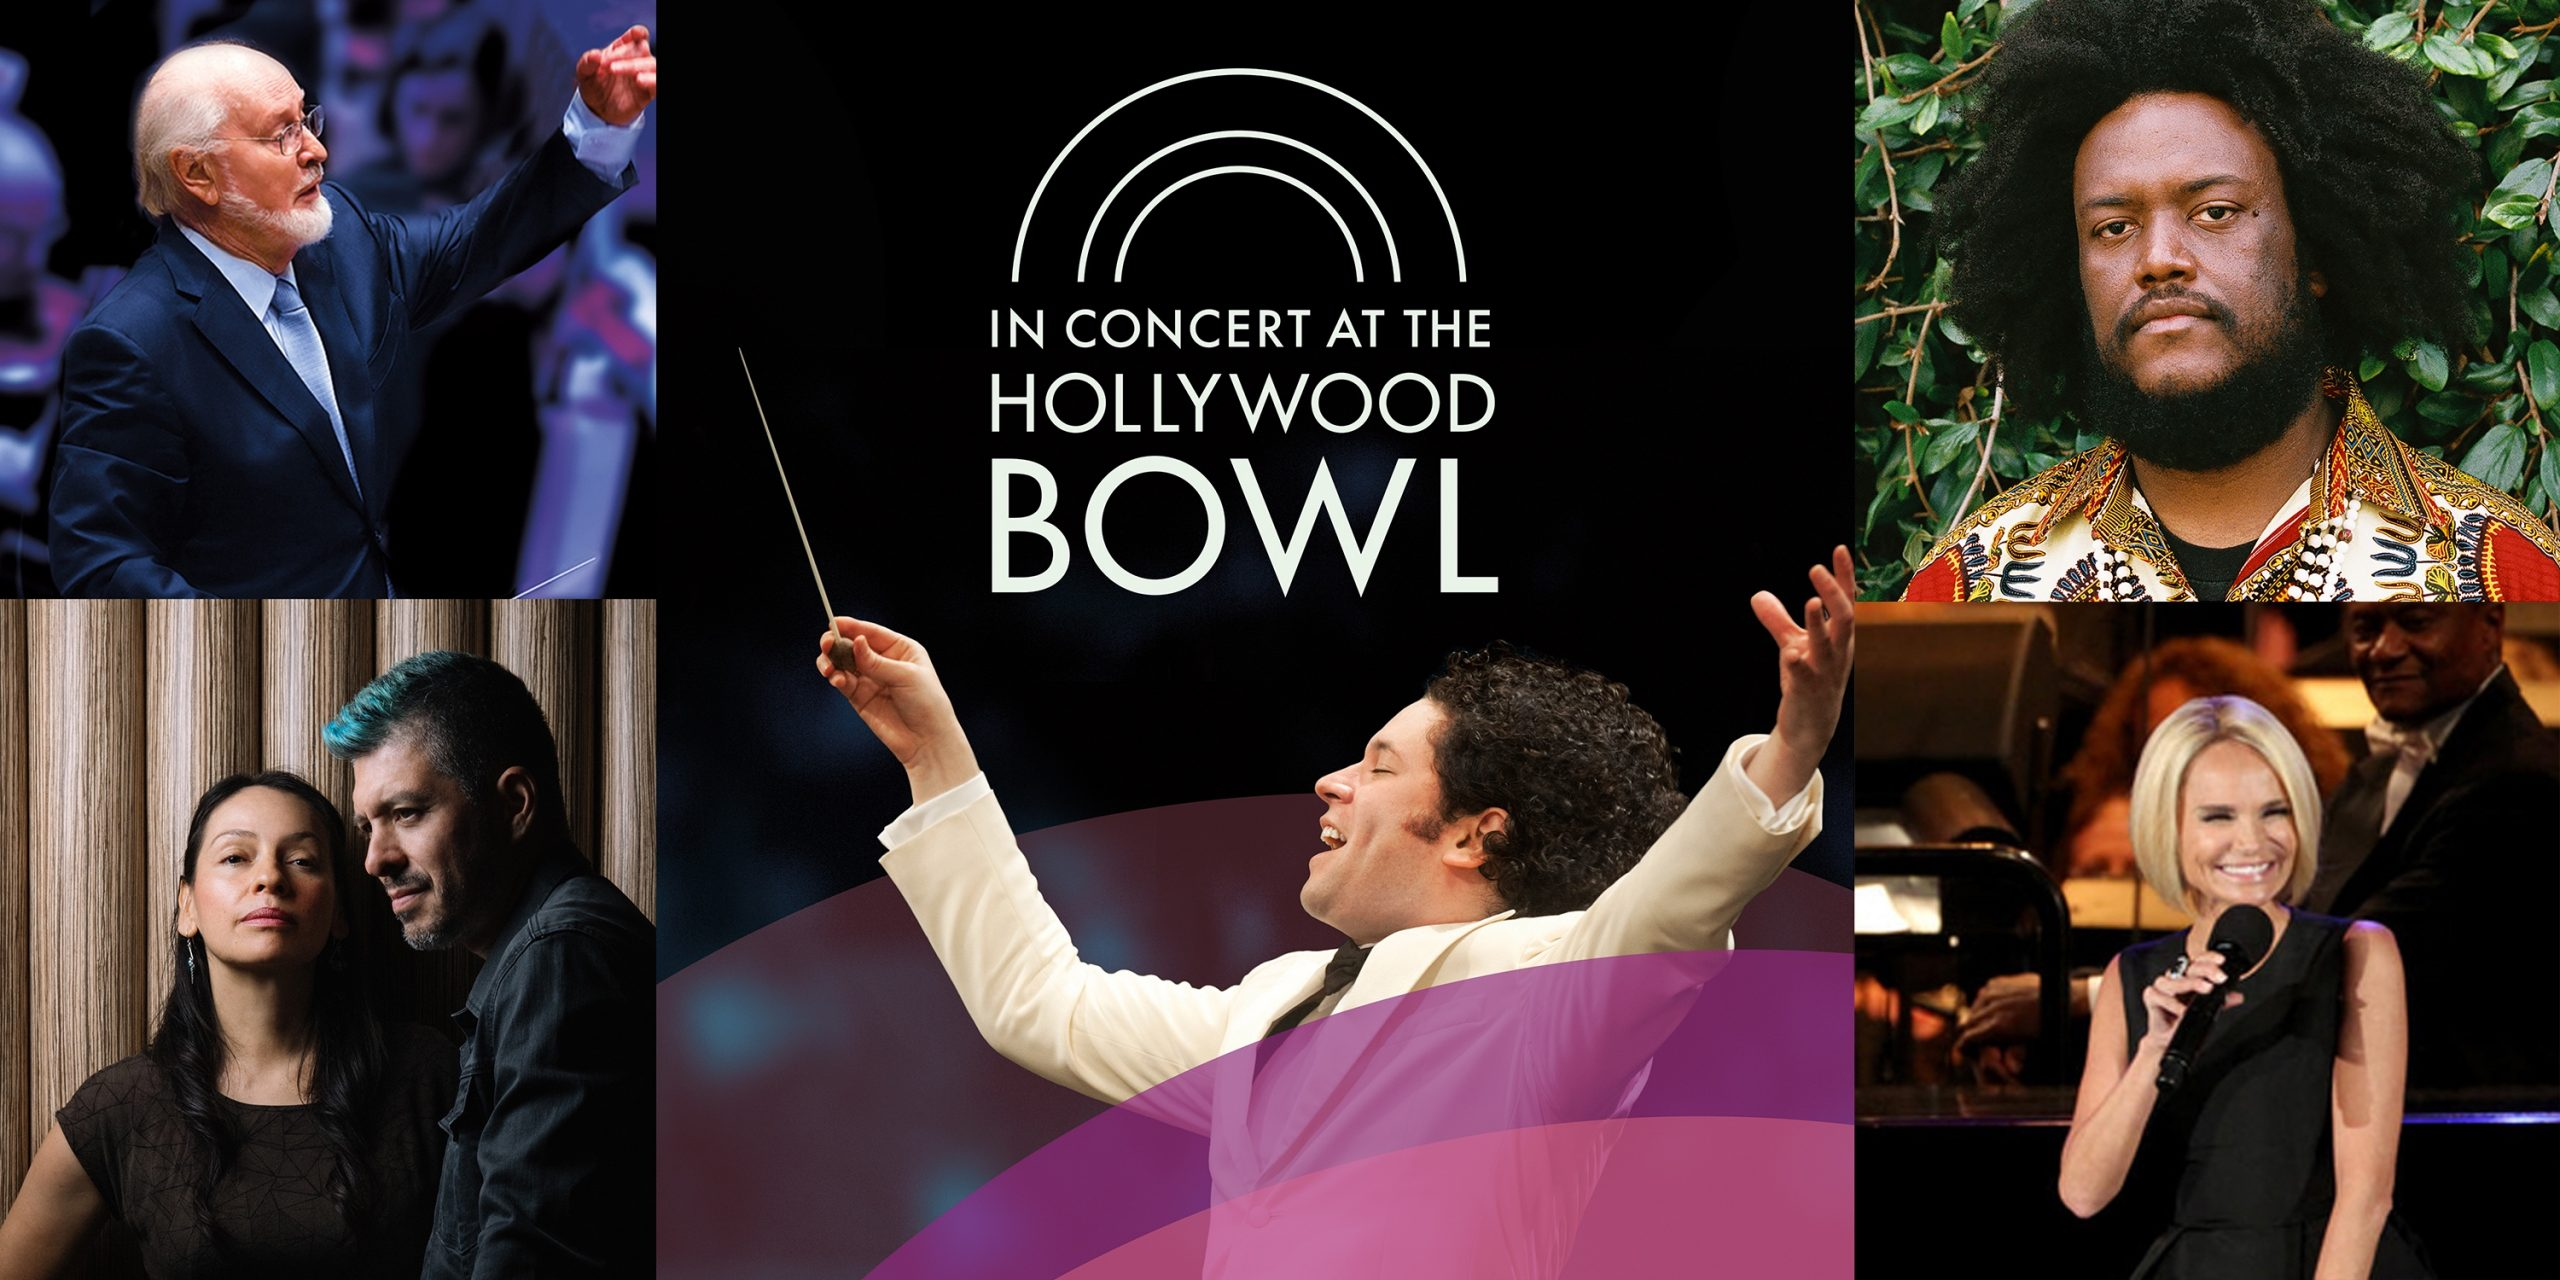 In Concert at the Hollywood Bowl Airing on WSKG-TV